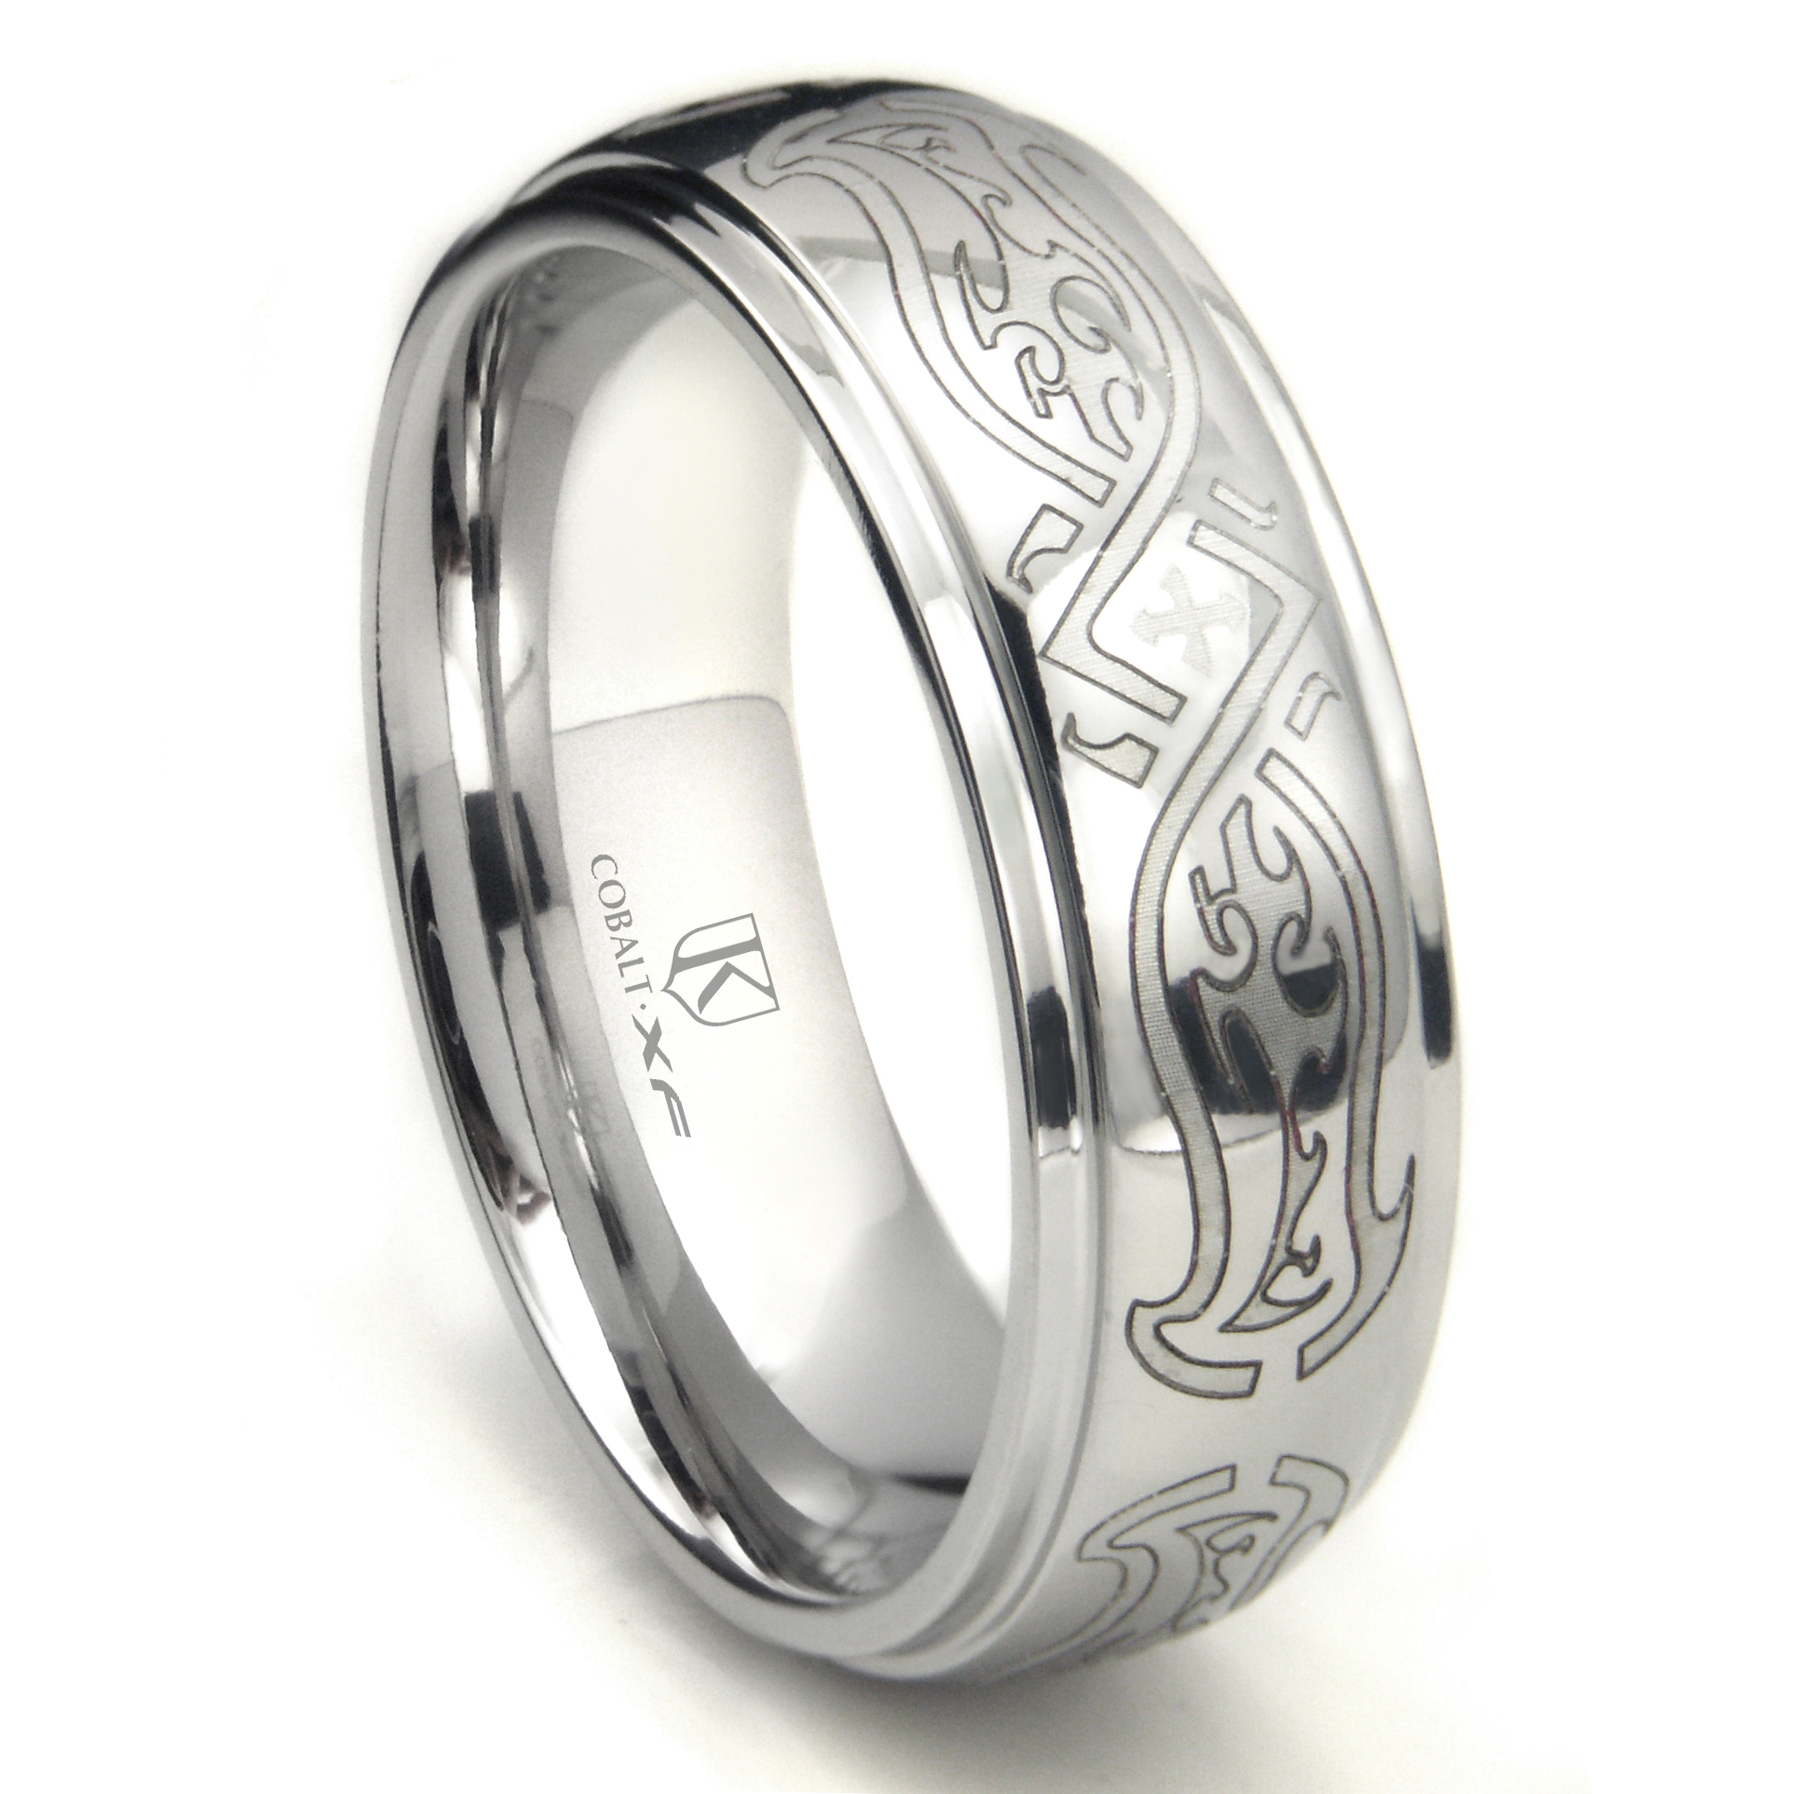 engagement diamonds diamond celtic ring nyc from engraved cfm rings claddagh gaelic engagementringsre mdc